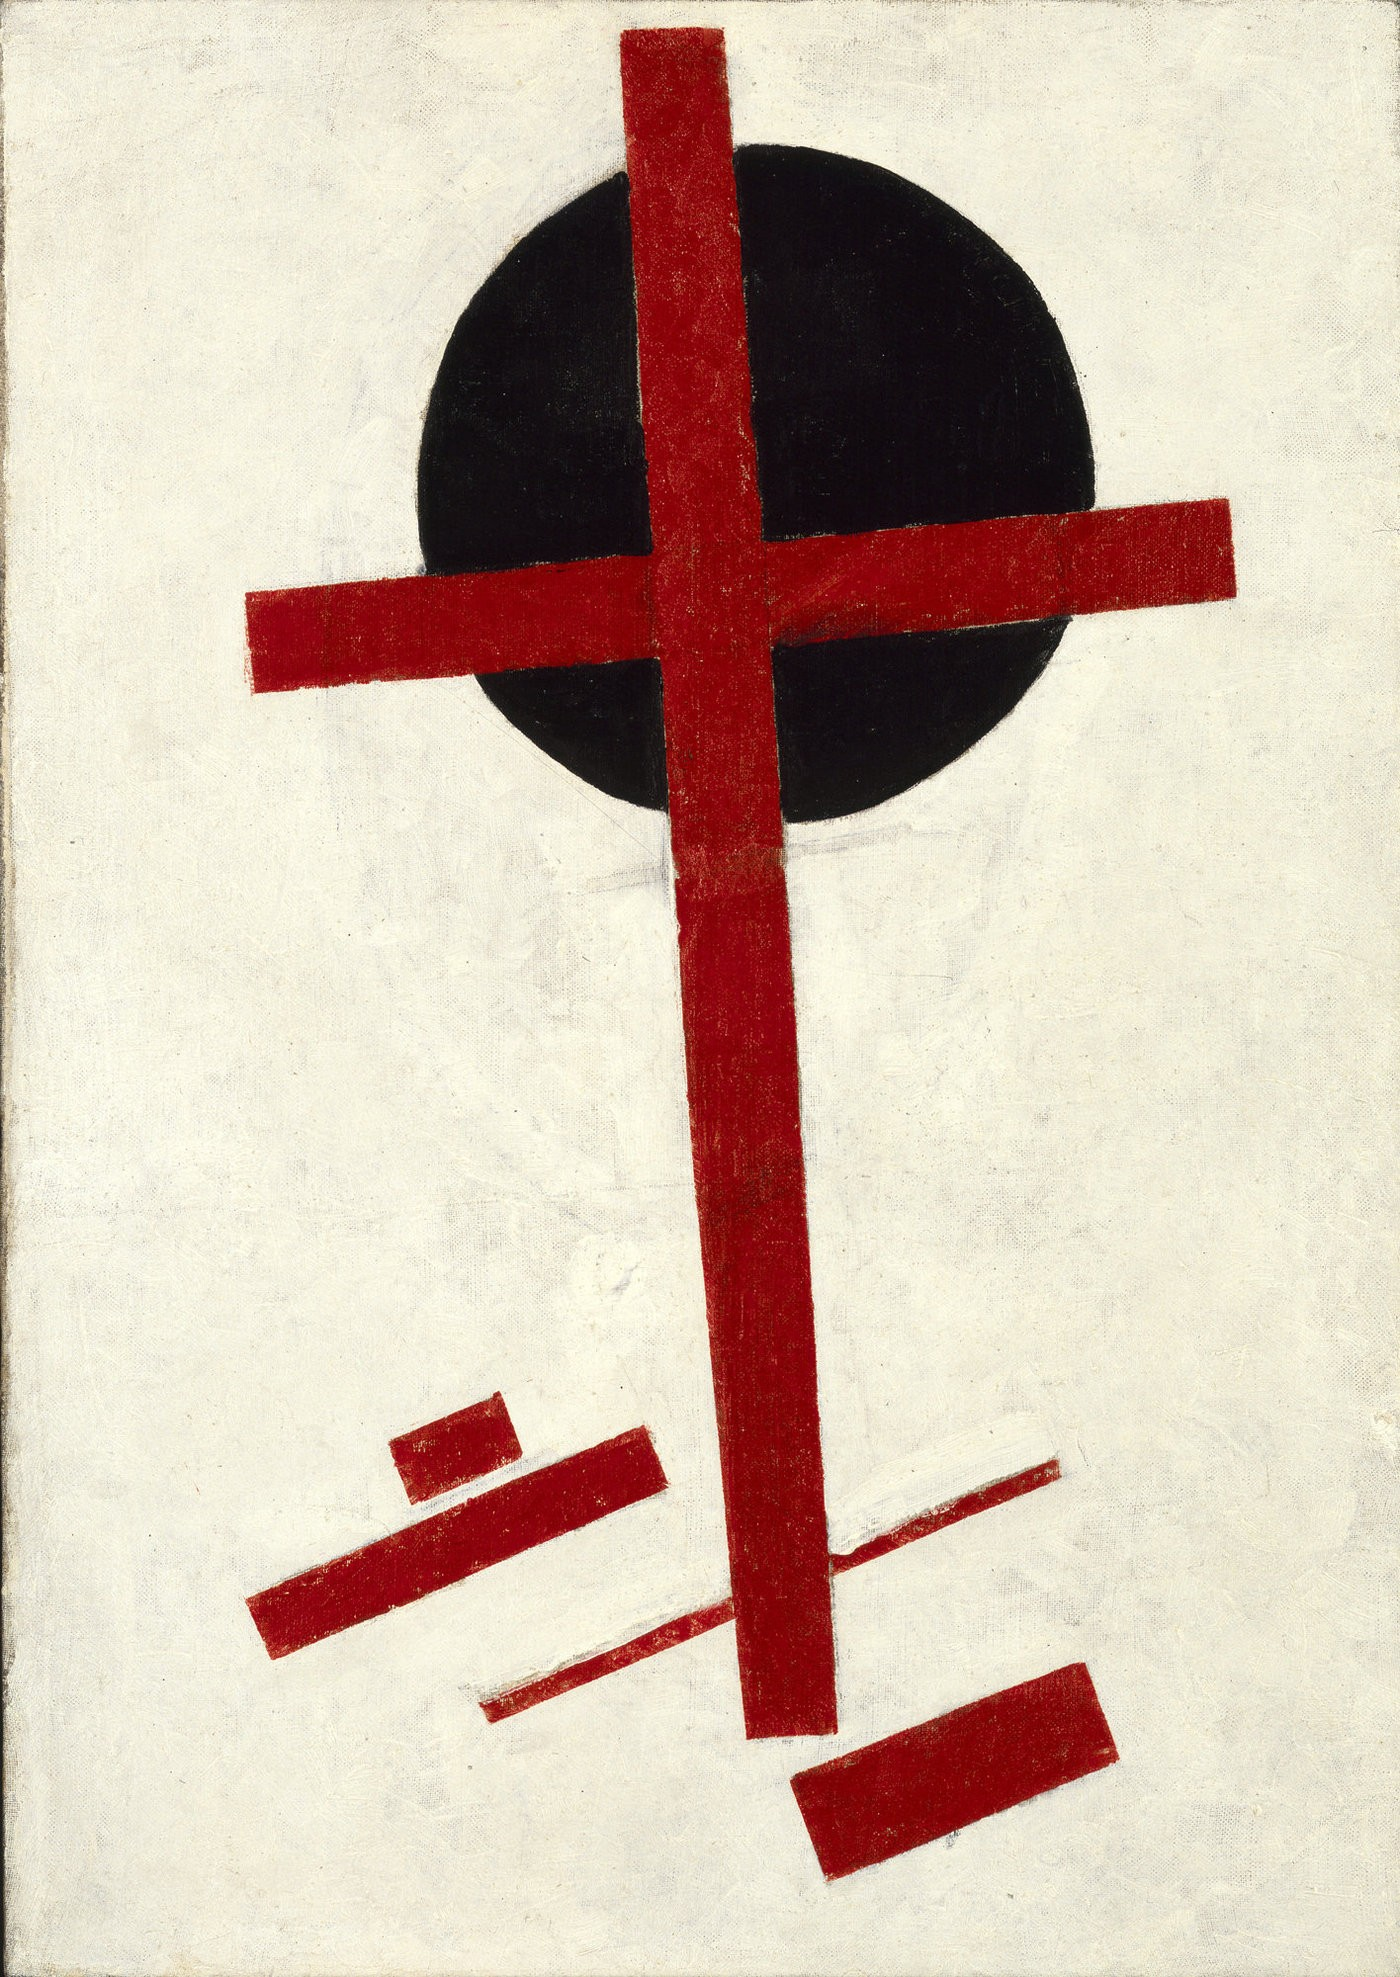 Medium 1 20malevich 20mystic suprematism  red cross on black circle  2c 1920 1922 2c oil on canvas 2c 72 2c5 x 51. collection stedelijk museum amsterdam original